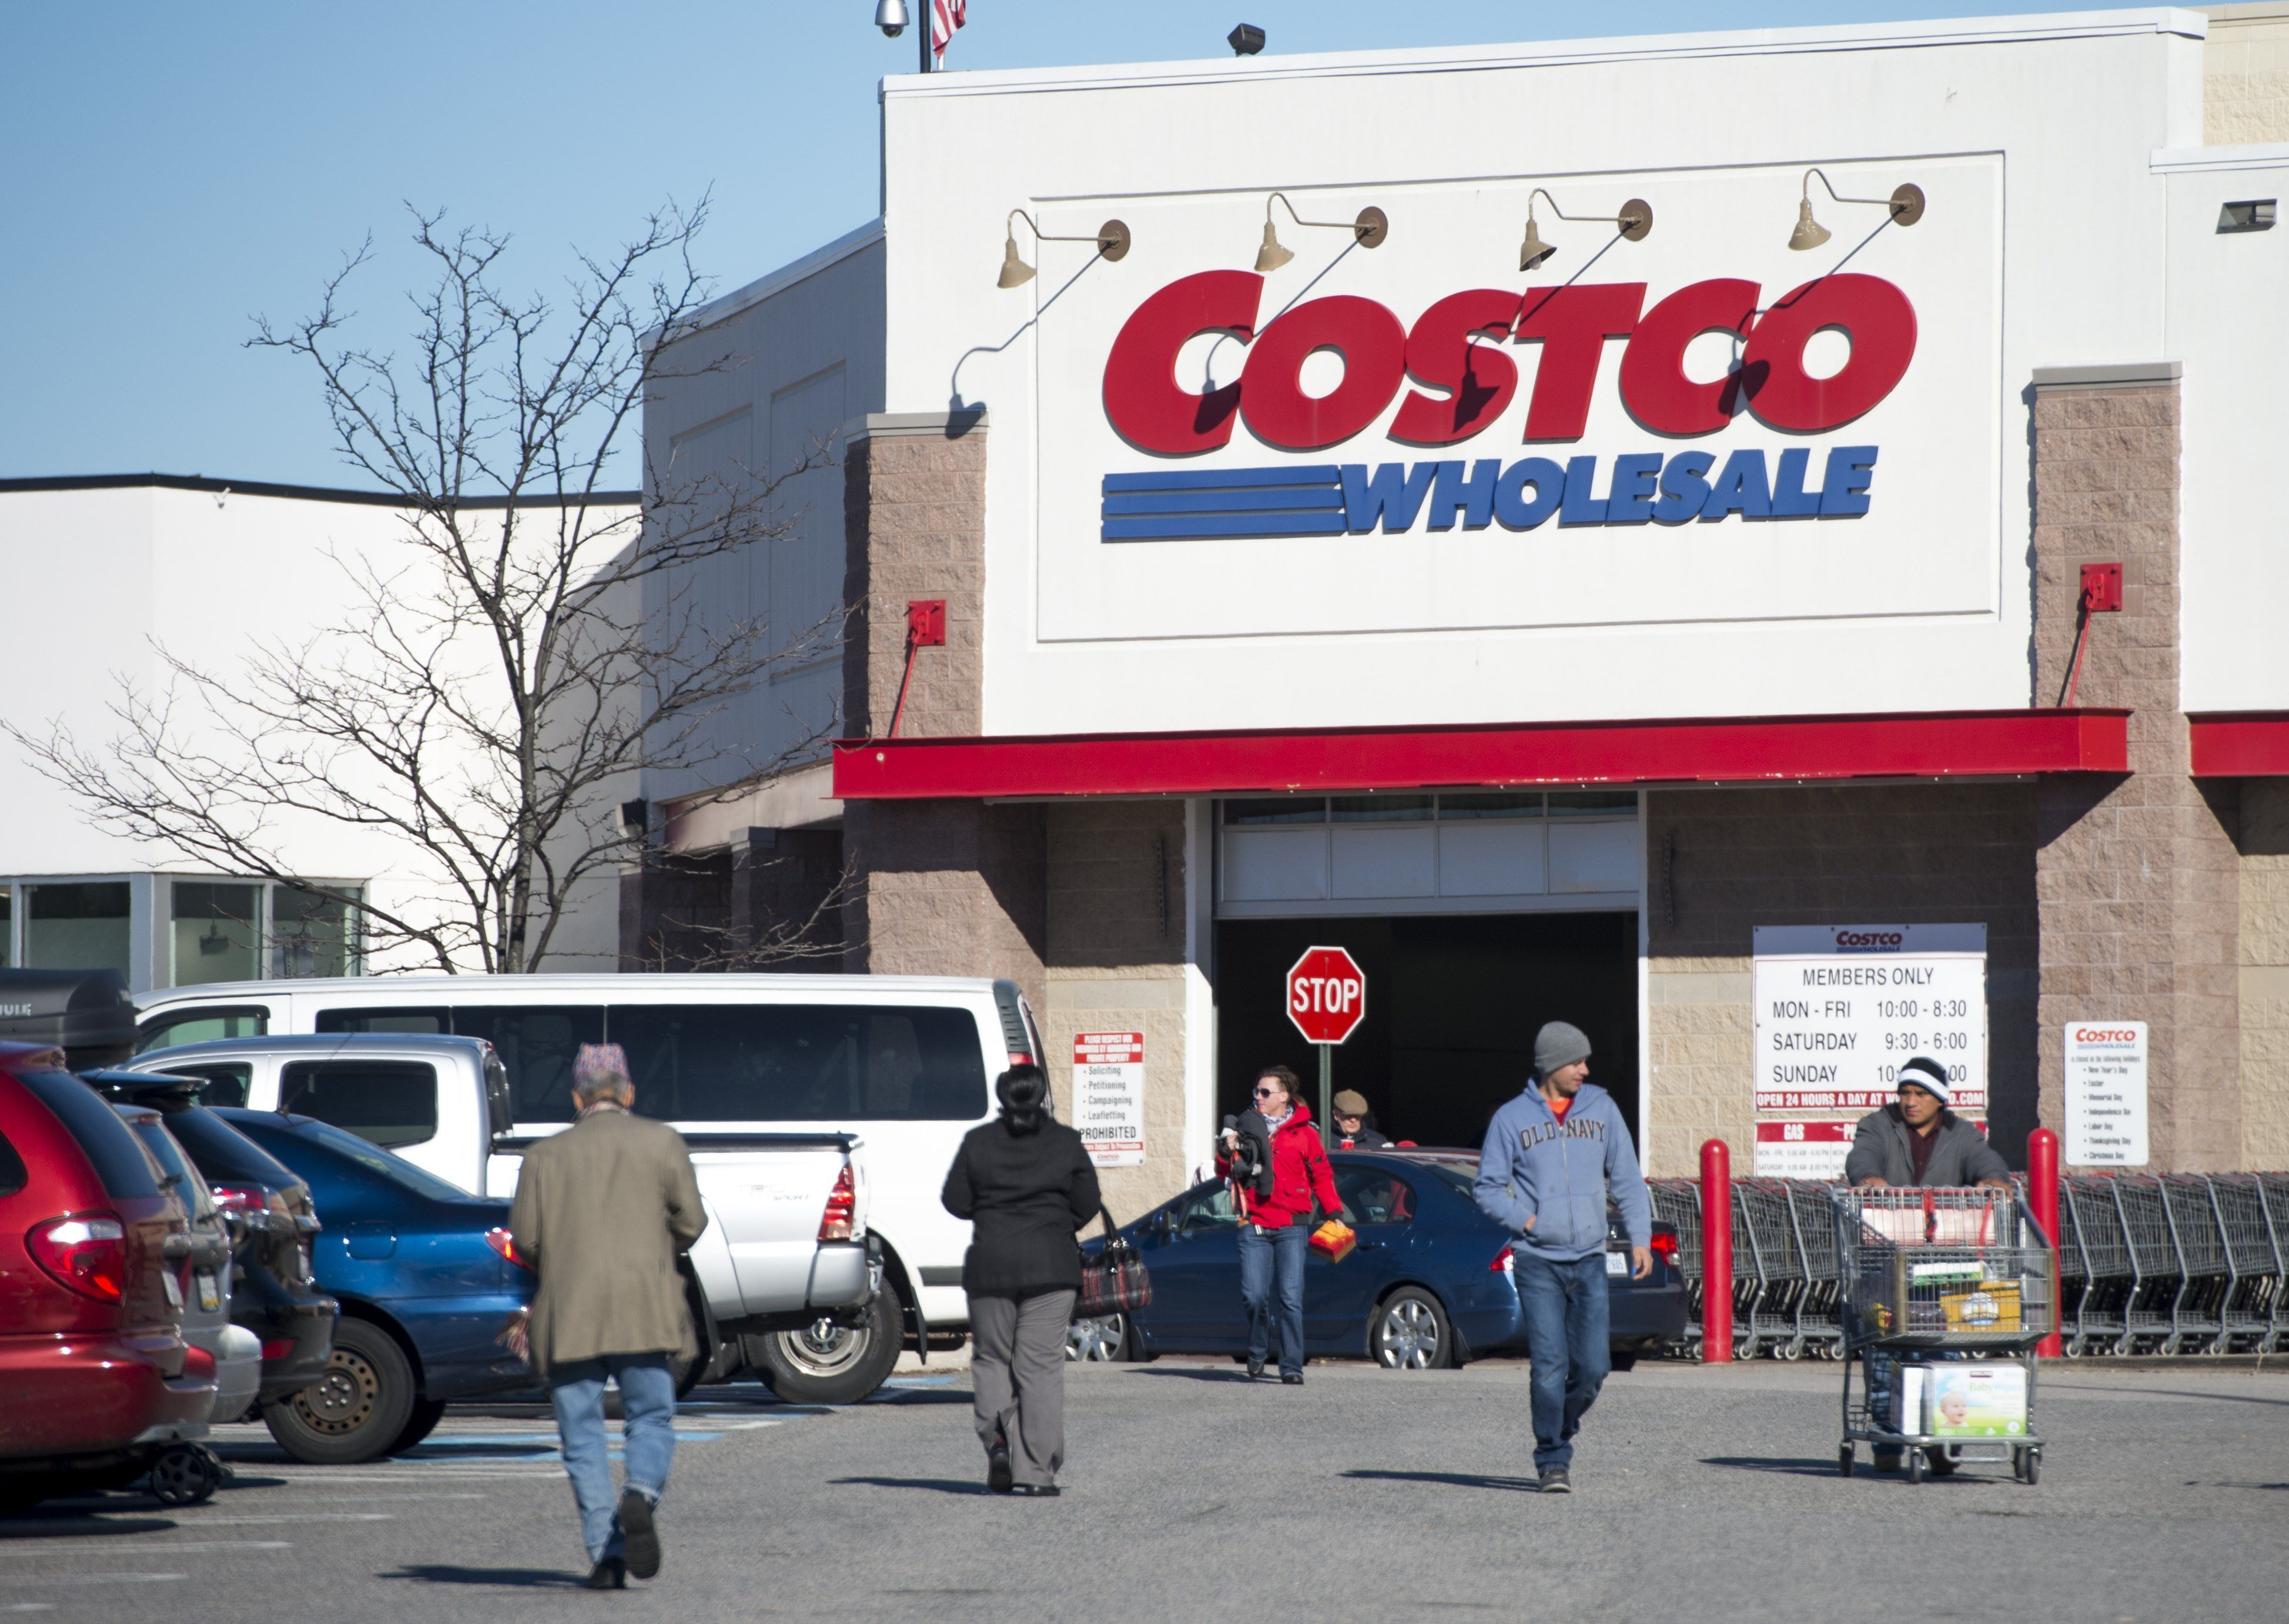 A Costco Wholesale warehouse location in Woodbridge, Virginia, January 5, 2016. AFP PHOTO / SAUL LOEB / AFP / SAUL LOEB        (Photo credit should read SAUL LOEB/AFP/Getty Images)